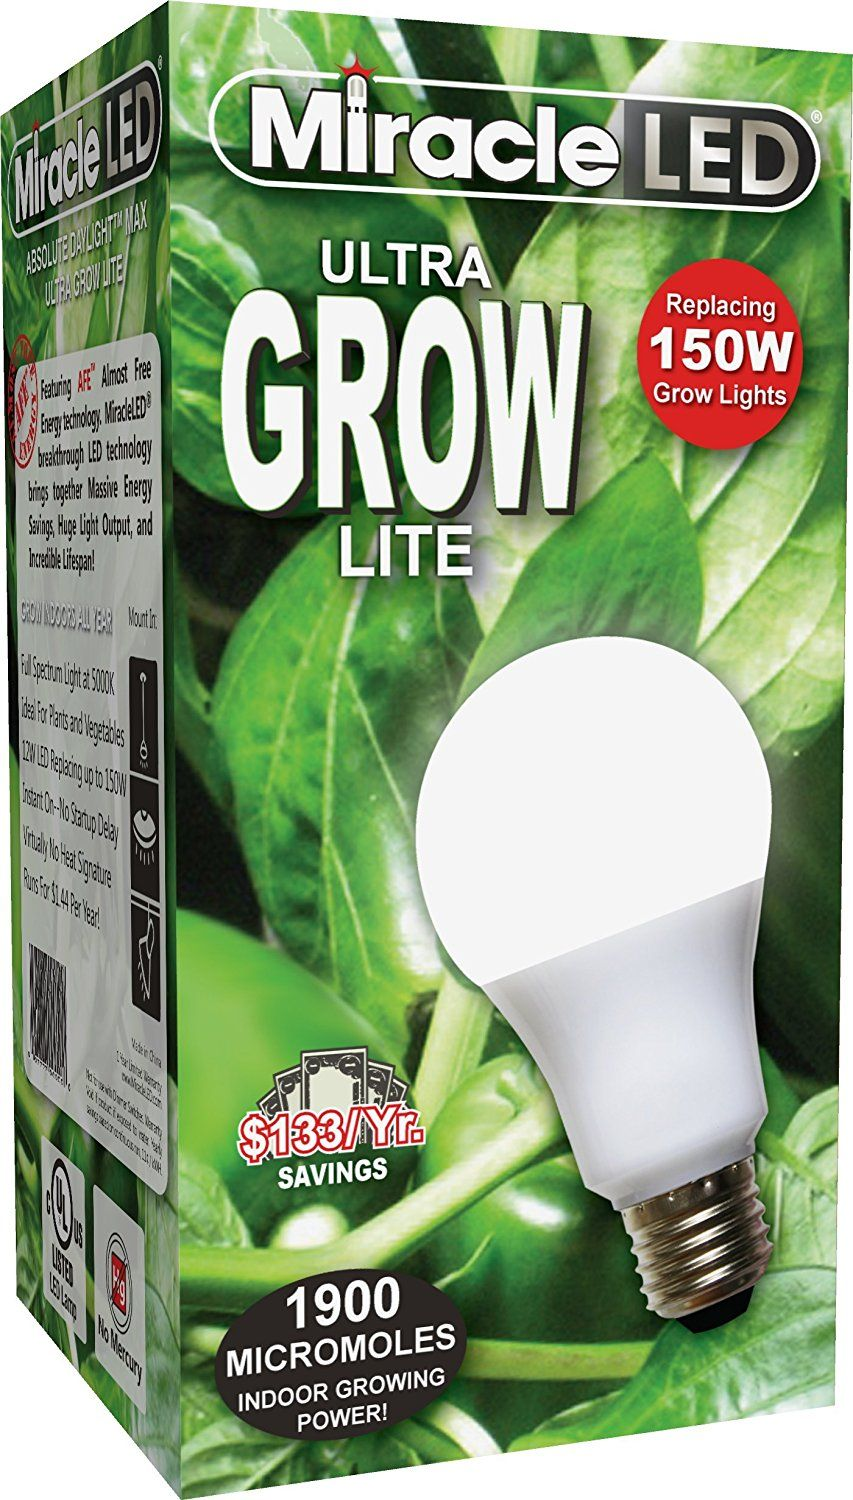 Miracle Led Commercial Hydroponic Ultra Grow Lite Replaces Up To